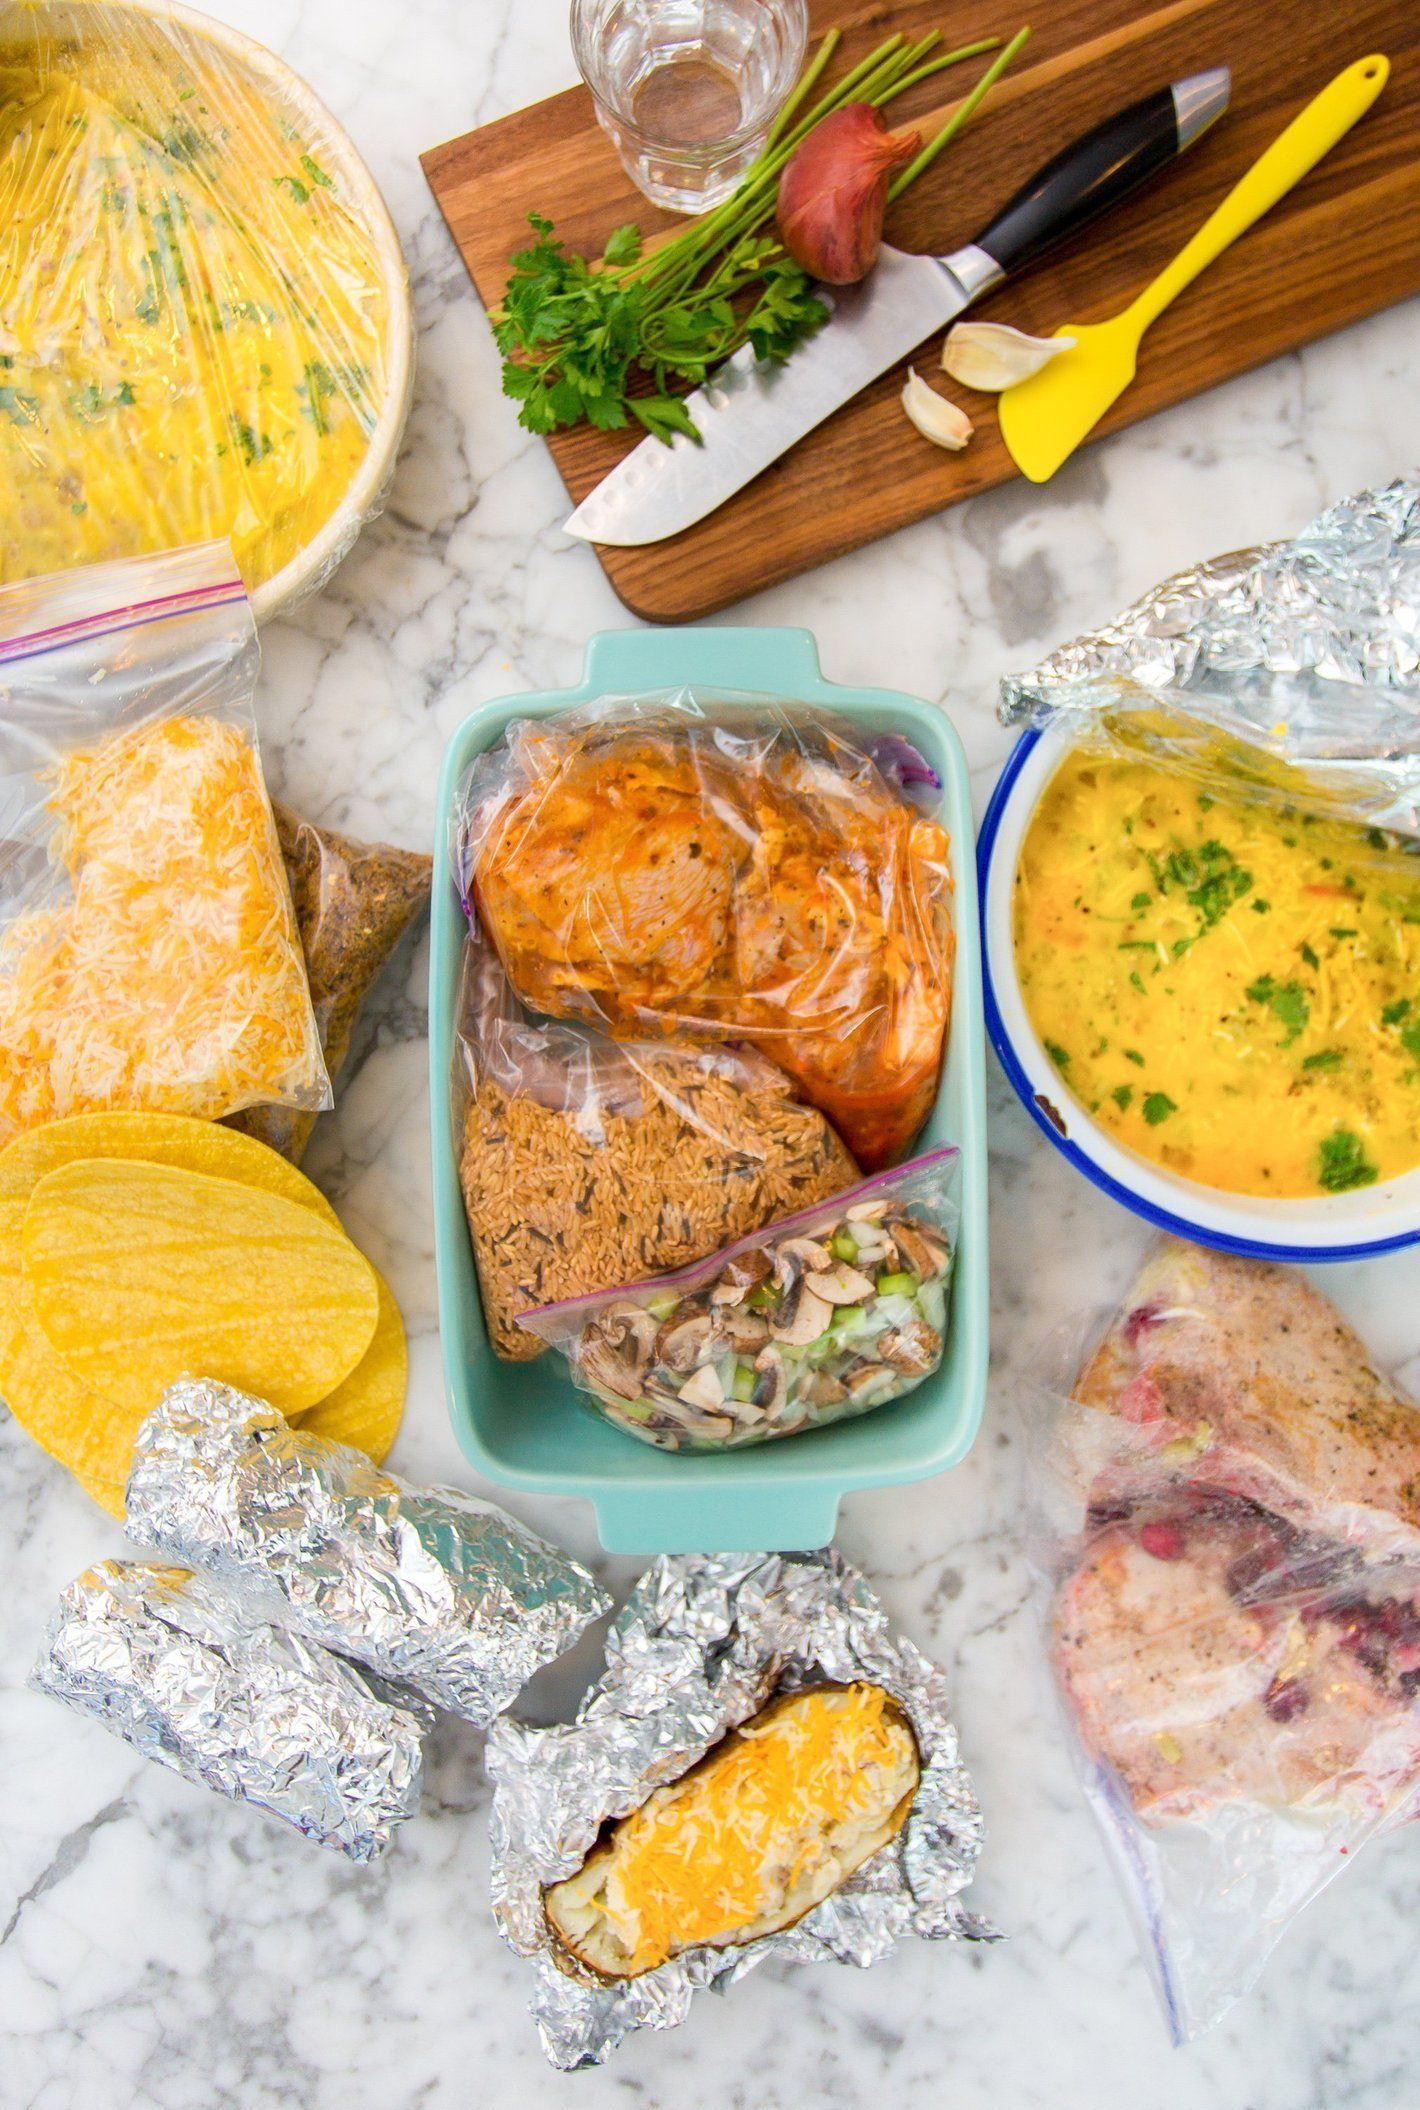 A Week Of Dinners From The Freezer Diy Gifts Freezer Meals